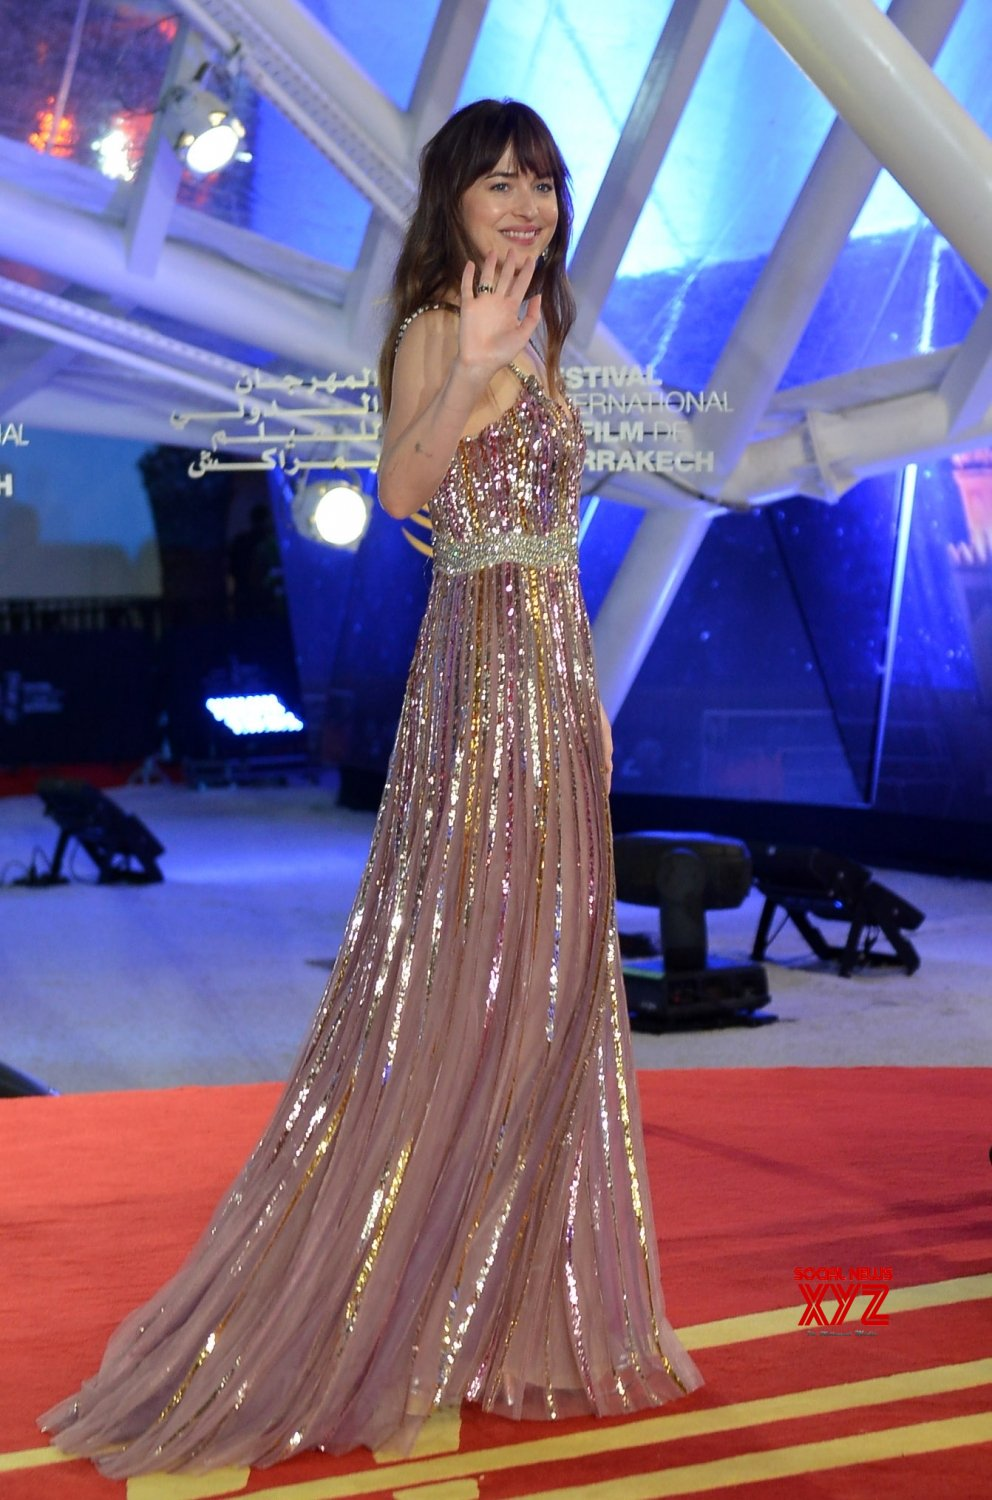 MOROCCO MARRAKECH FILM FESTIVAL OPENING CEREMONY #Gallery